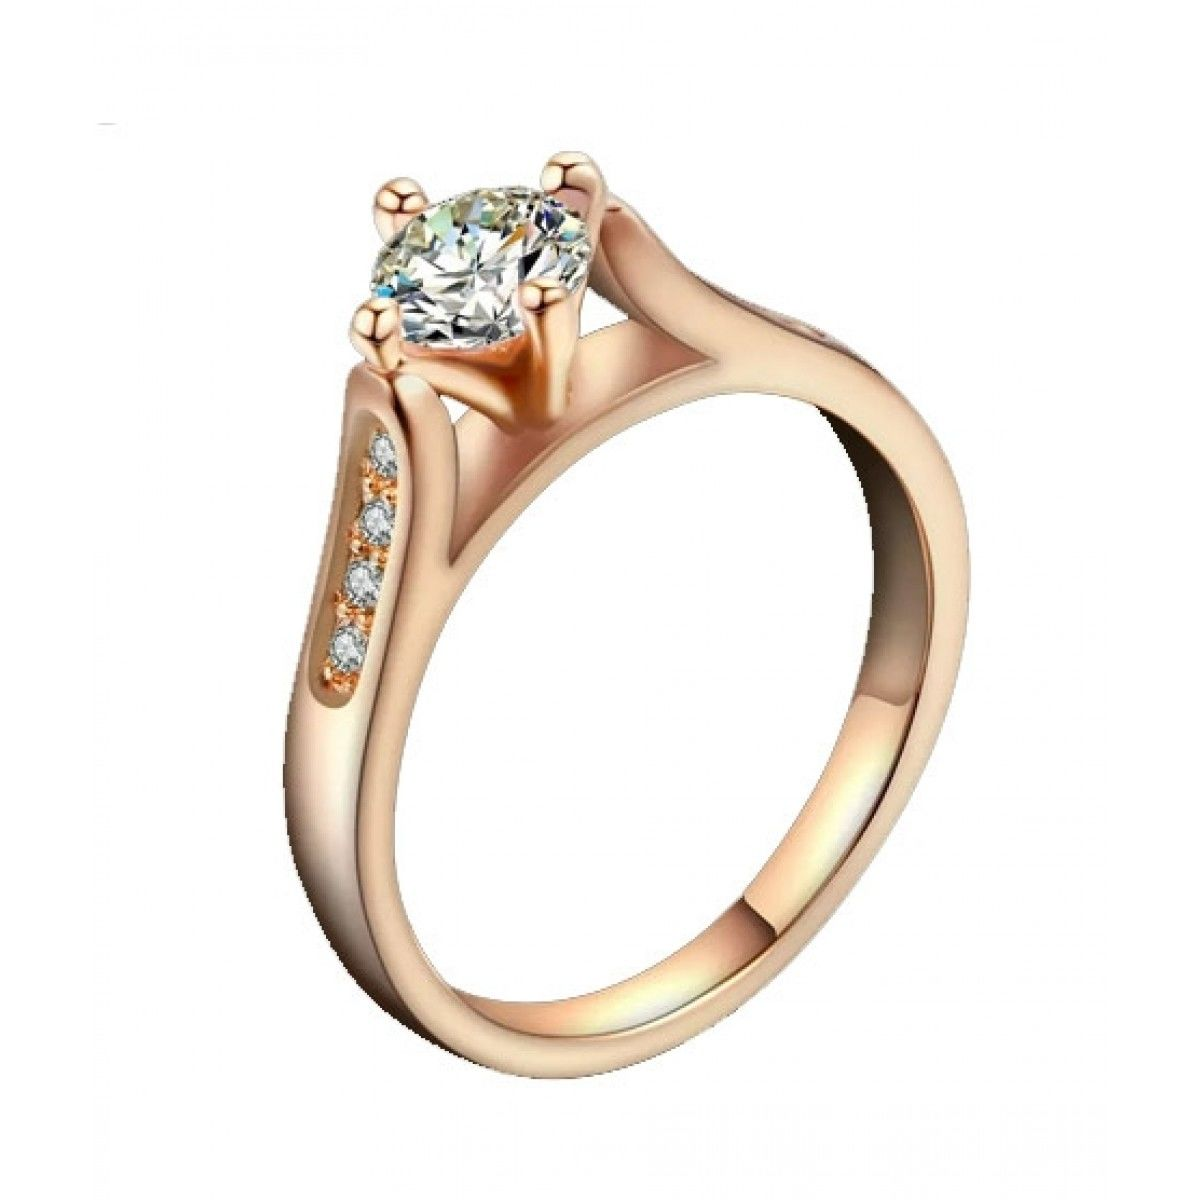 4 Tips on How to Choose the Perfect Engagement Ring